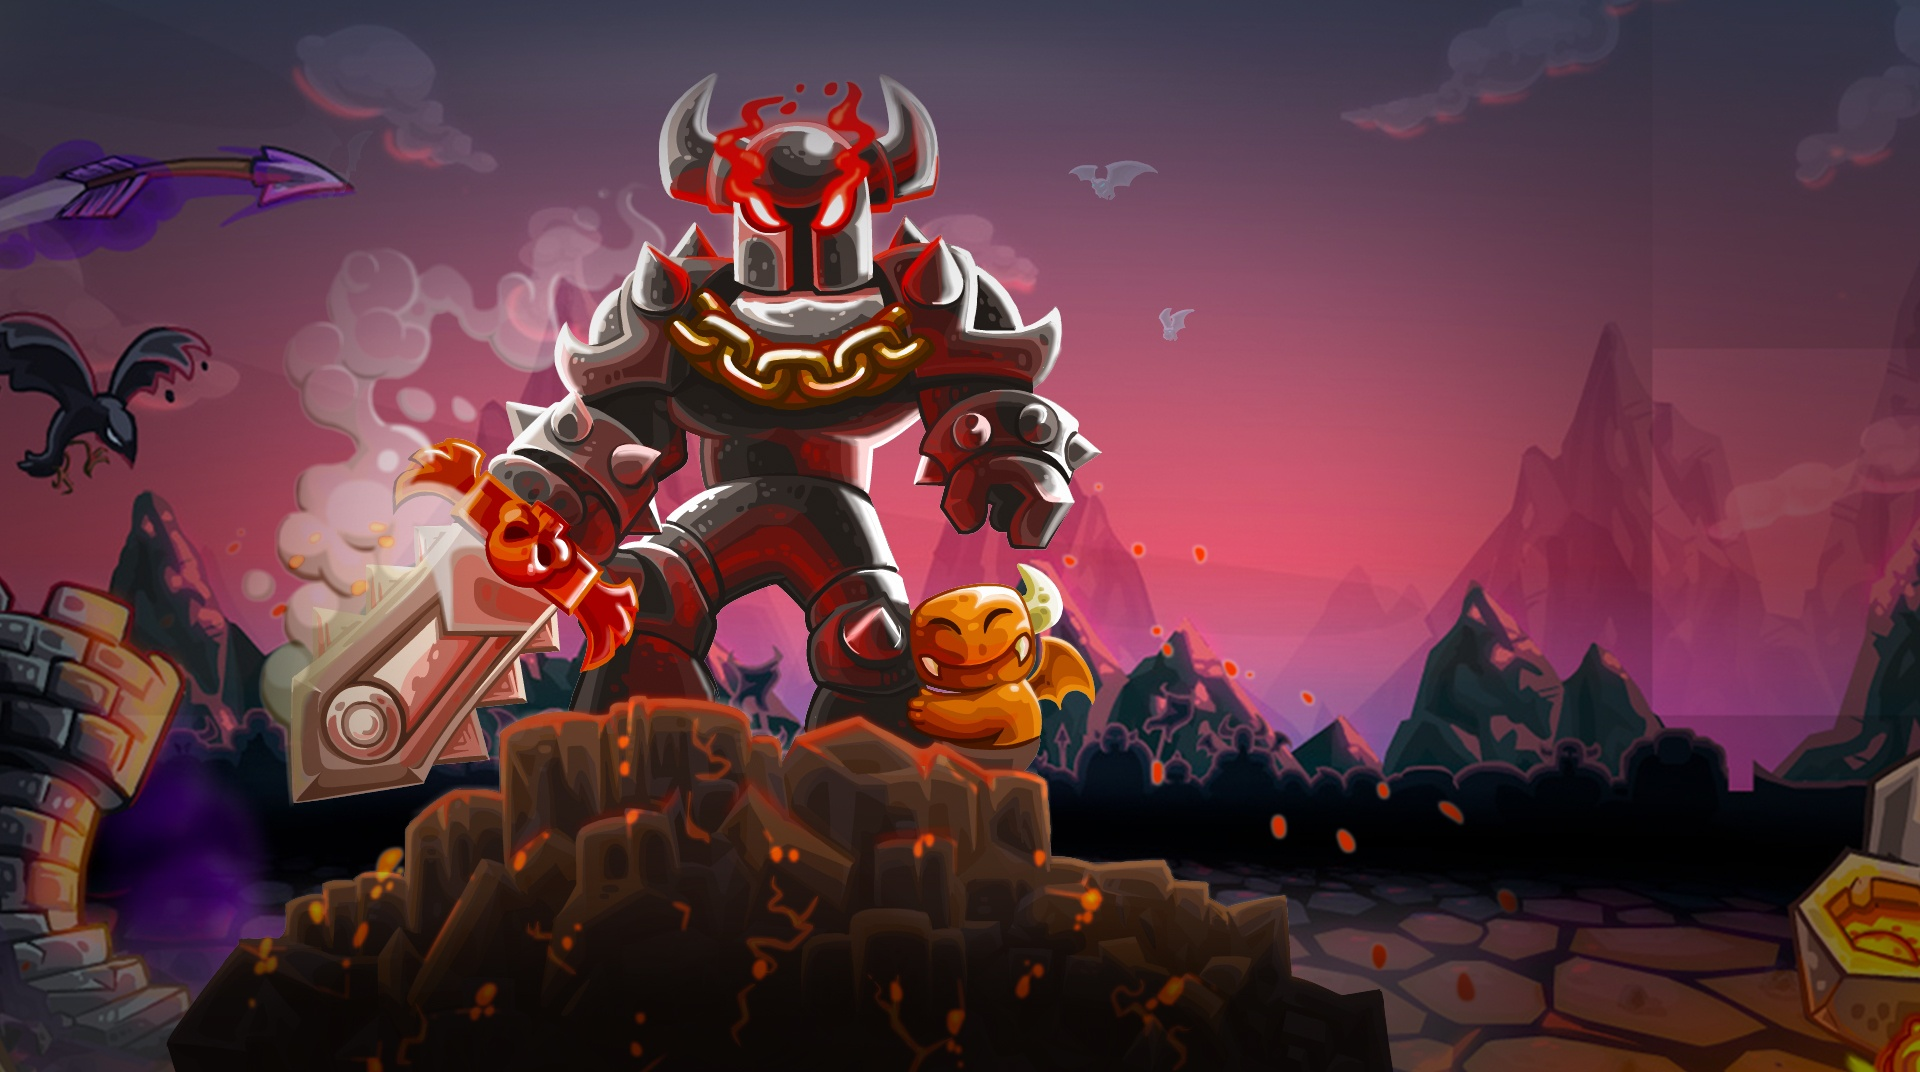 Download Kingdom Rush Vengeance on PC with BlueStacks on elder scrolls kingdom map, blackwater rush ice and fire map, rush tower map, dwarven kingdom map,